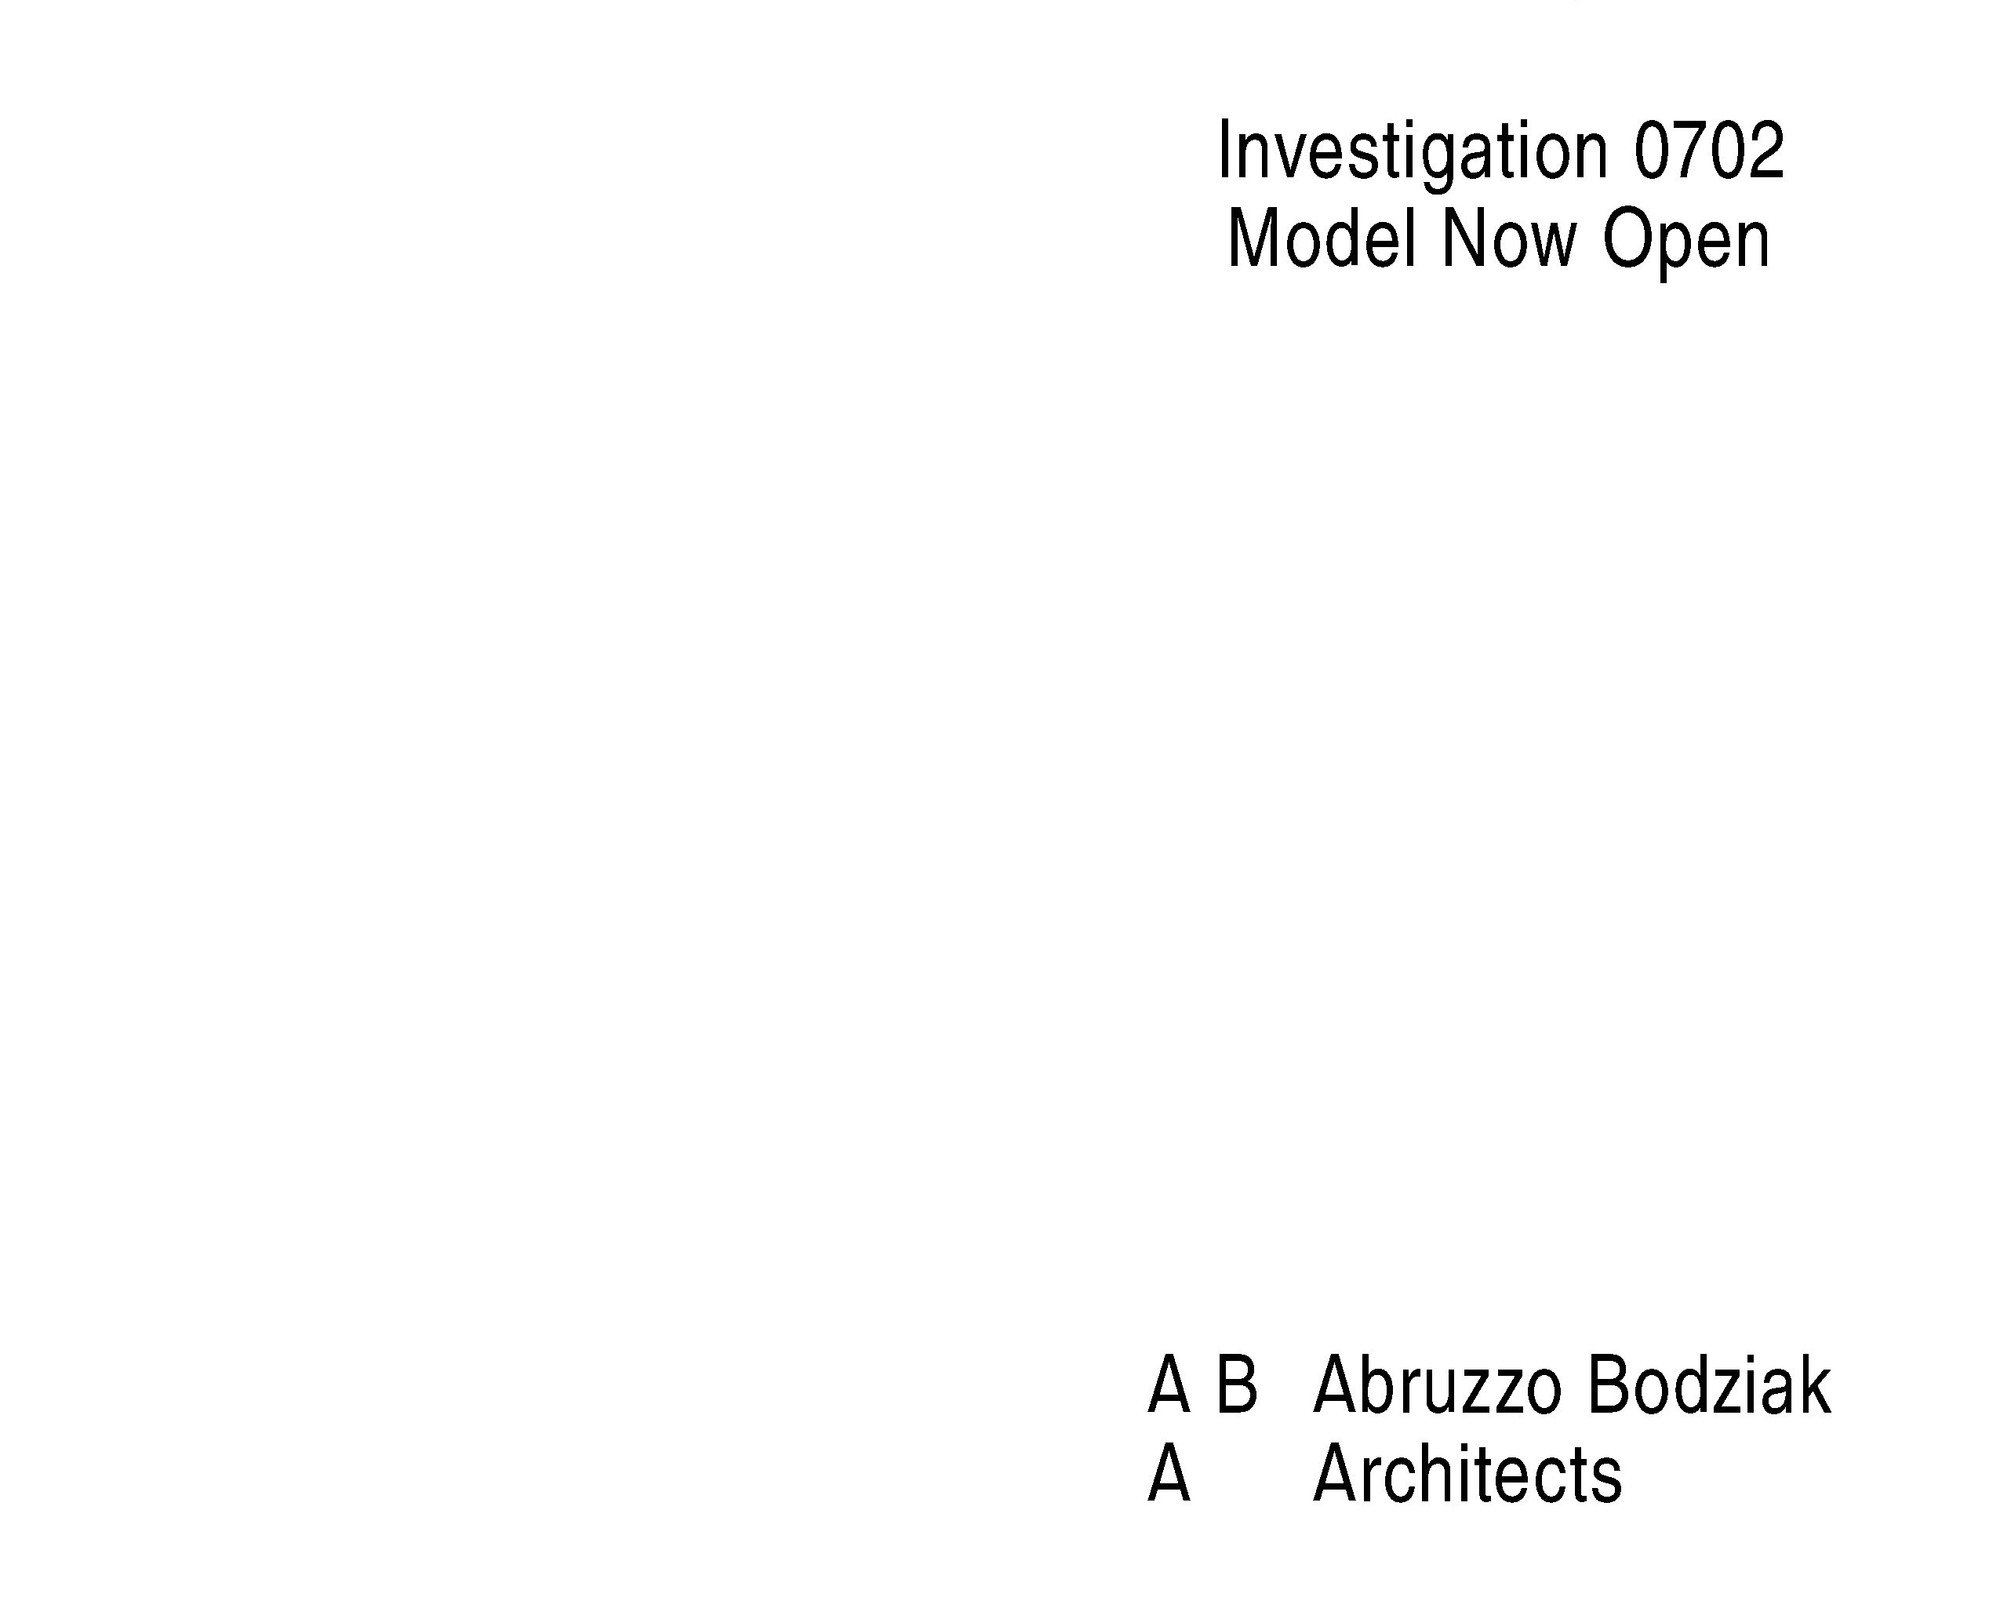 0702 model now open investigation page 02 2000 xxx q85